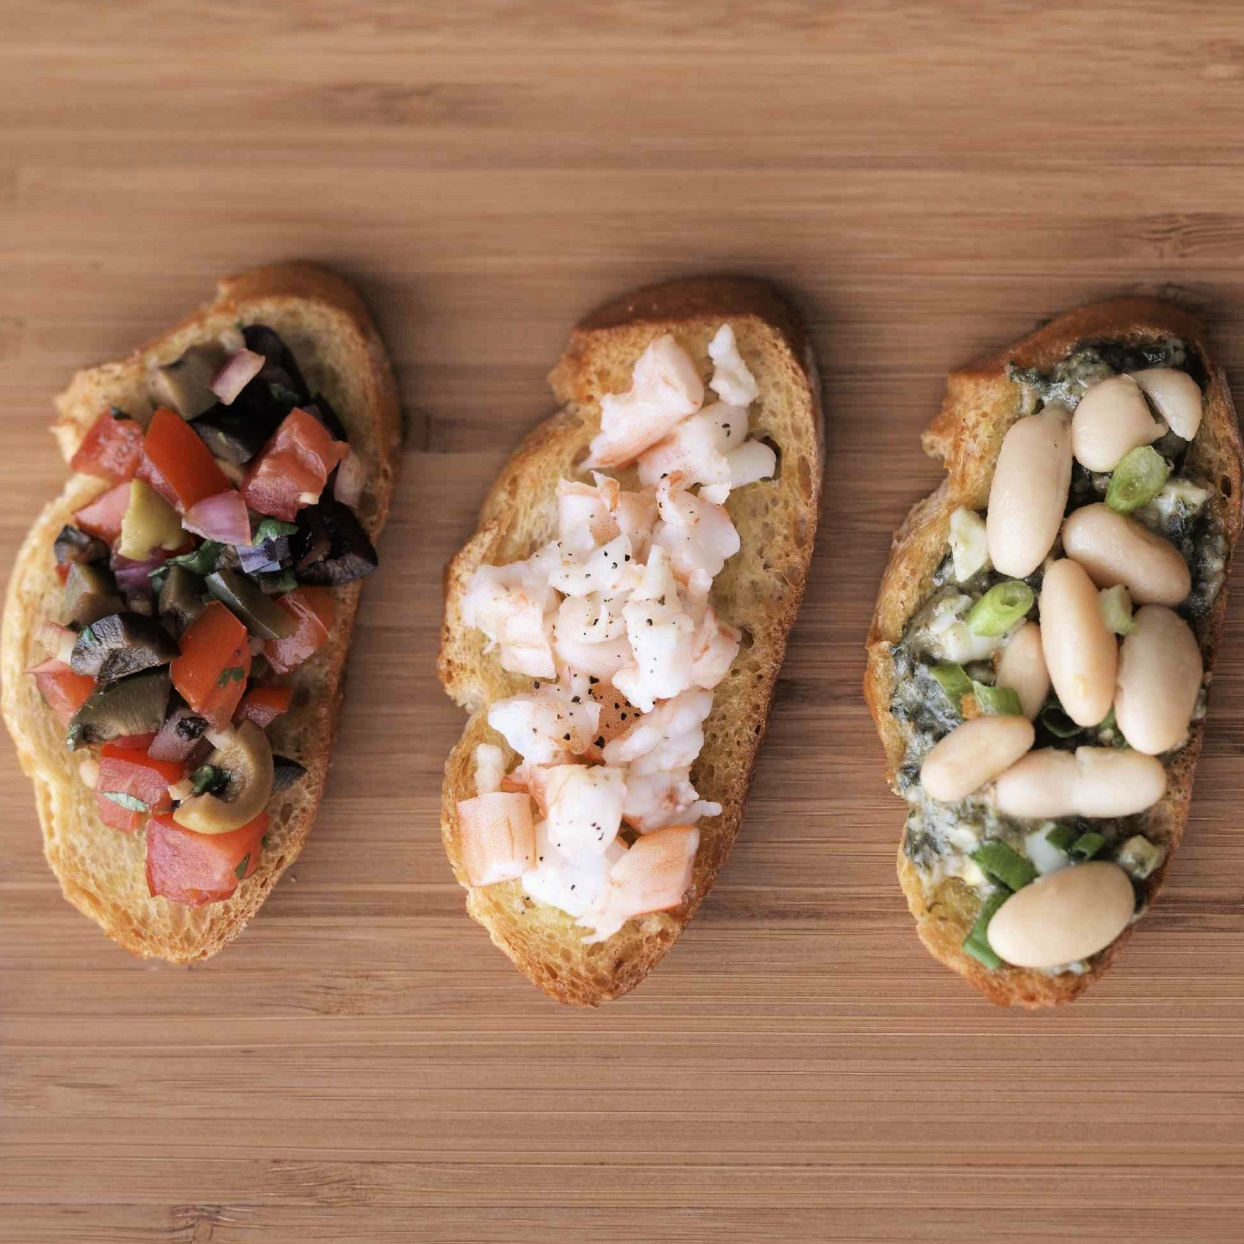 Bruschetta with a variety of toppings